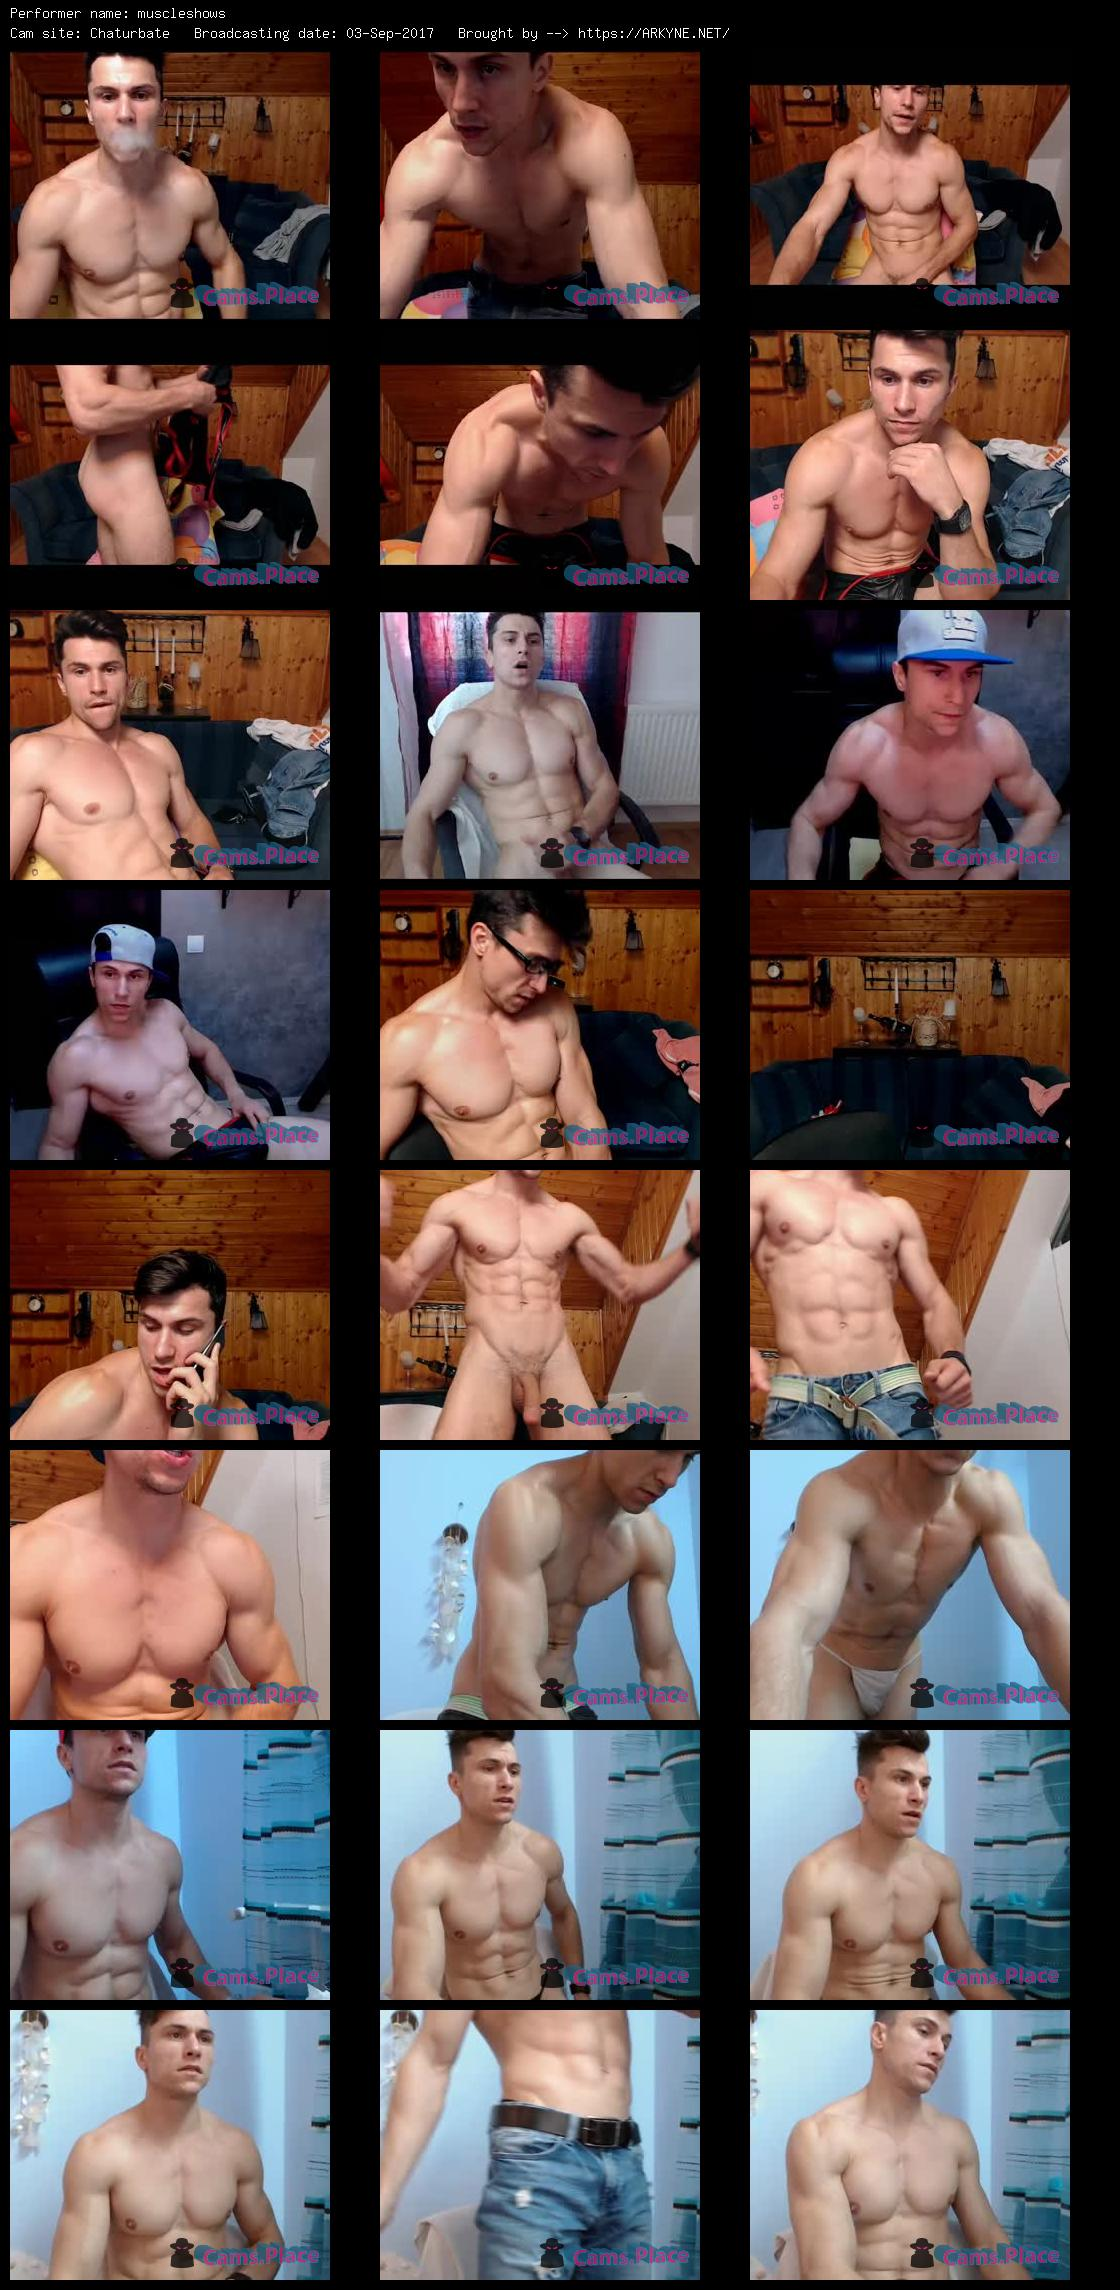 muscleshows's Show Preview